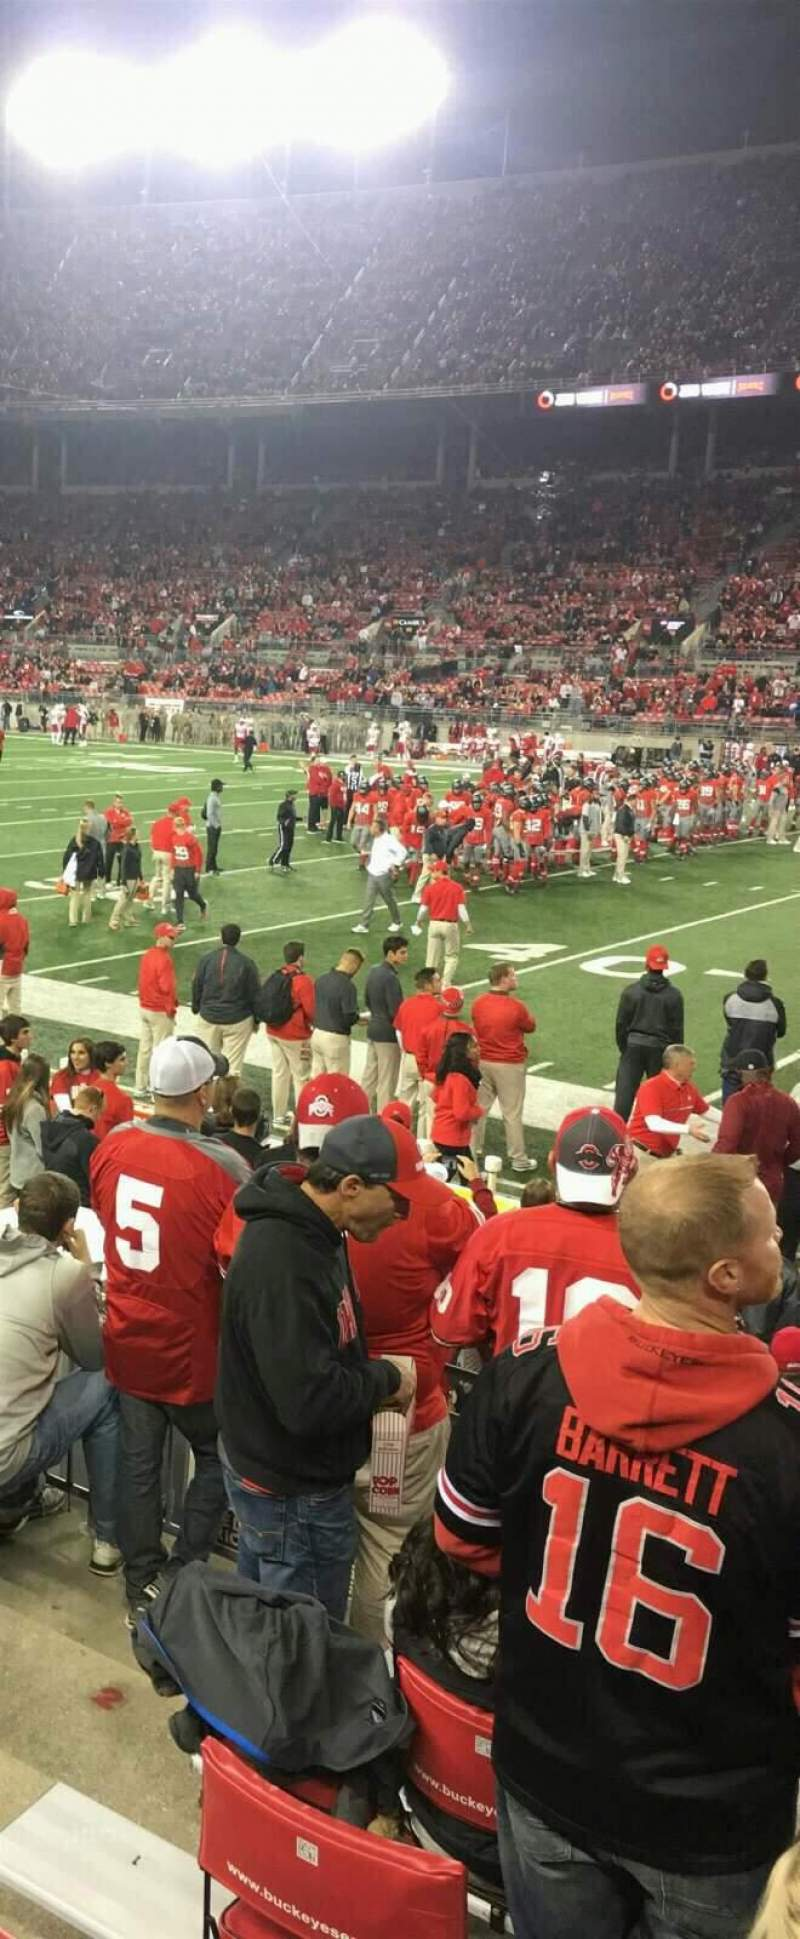 Seating view for Ohio Stadium Section 23 Row 7 Seat 6